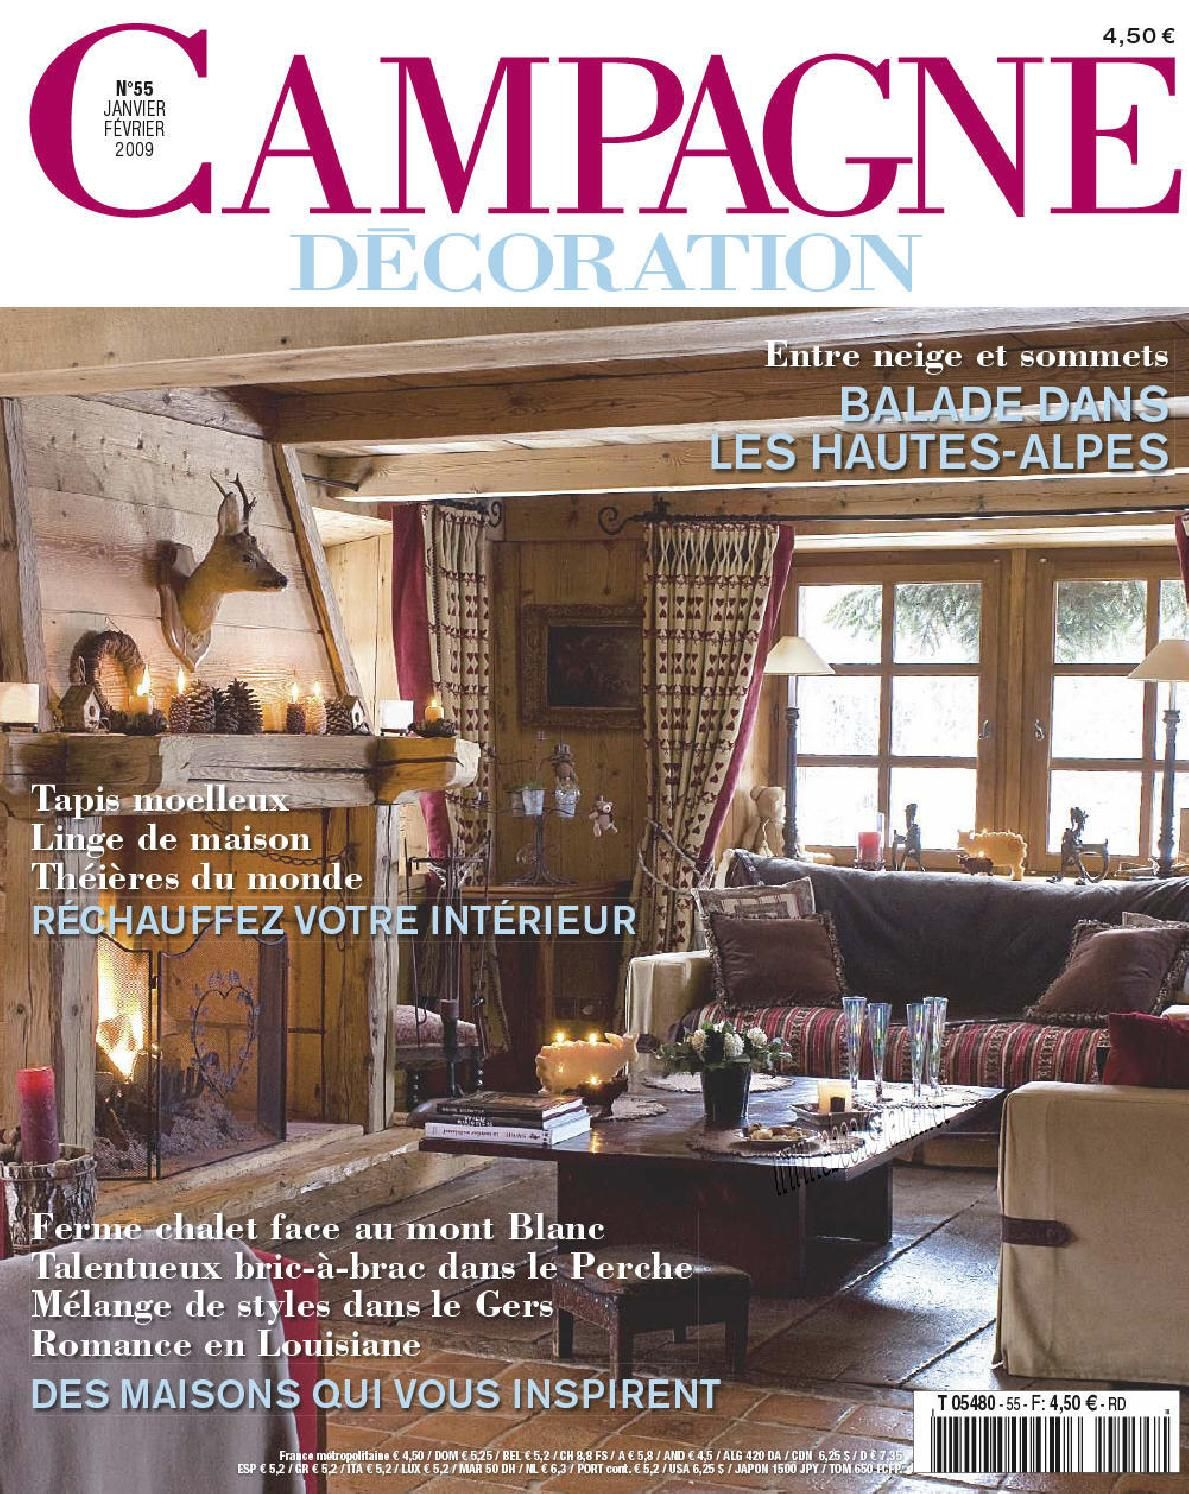 Magazine Campagne Décoration Campagne Decoration N55 Campagne Decoration Magazin Magazines